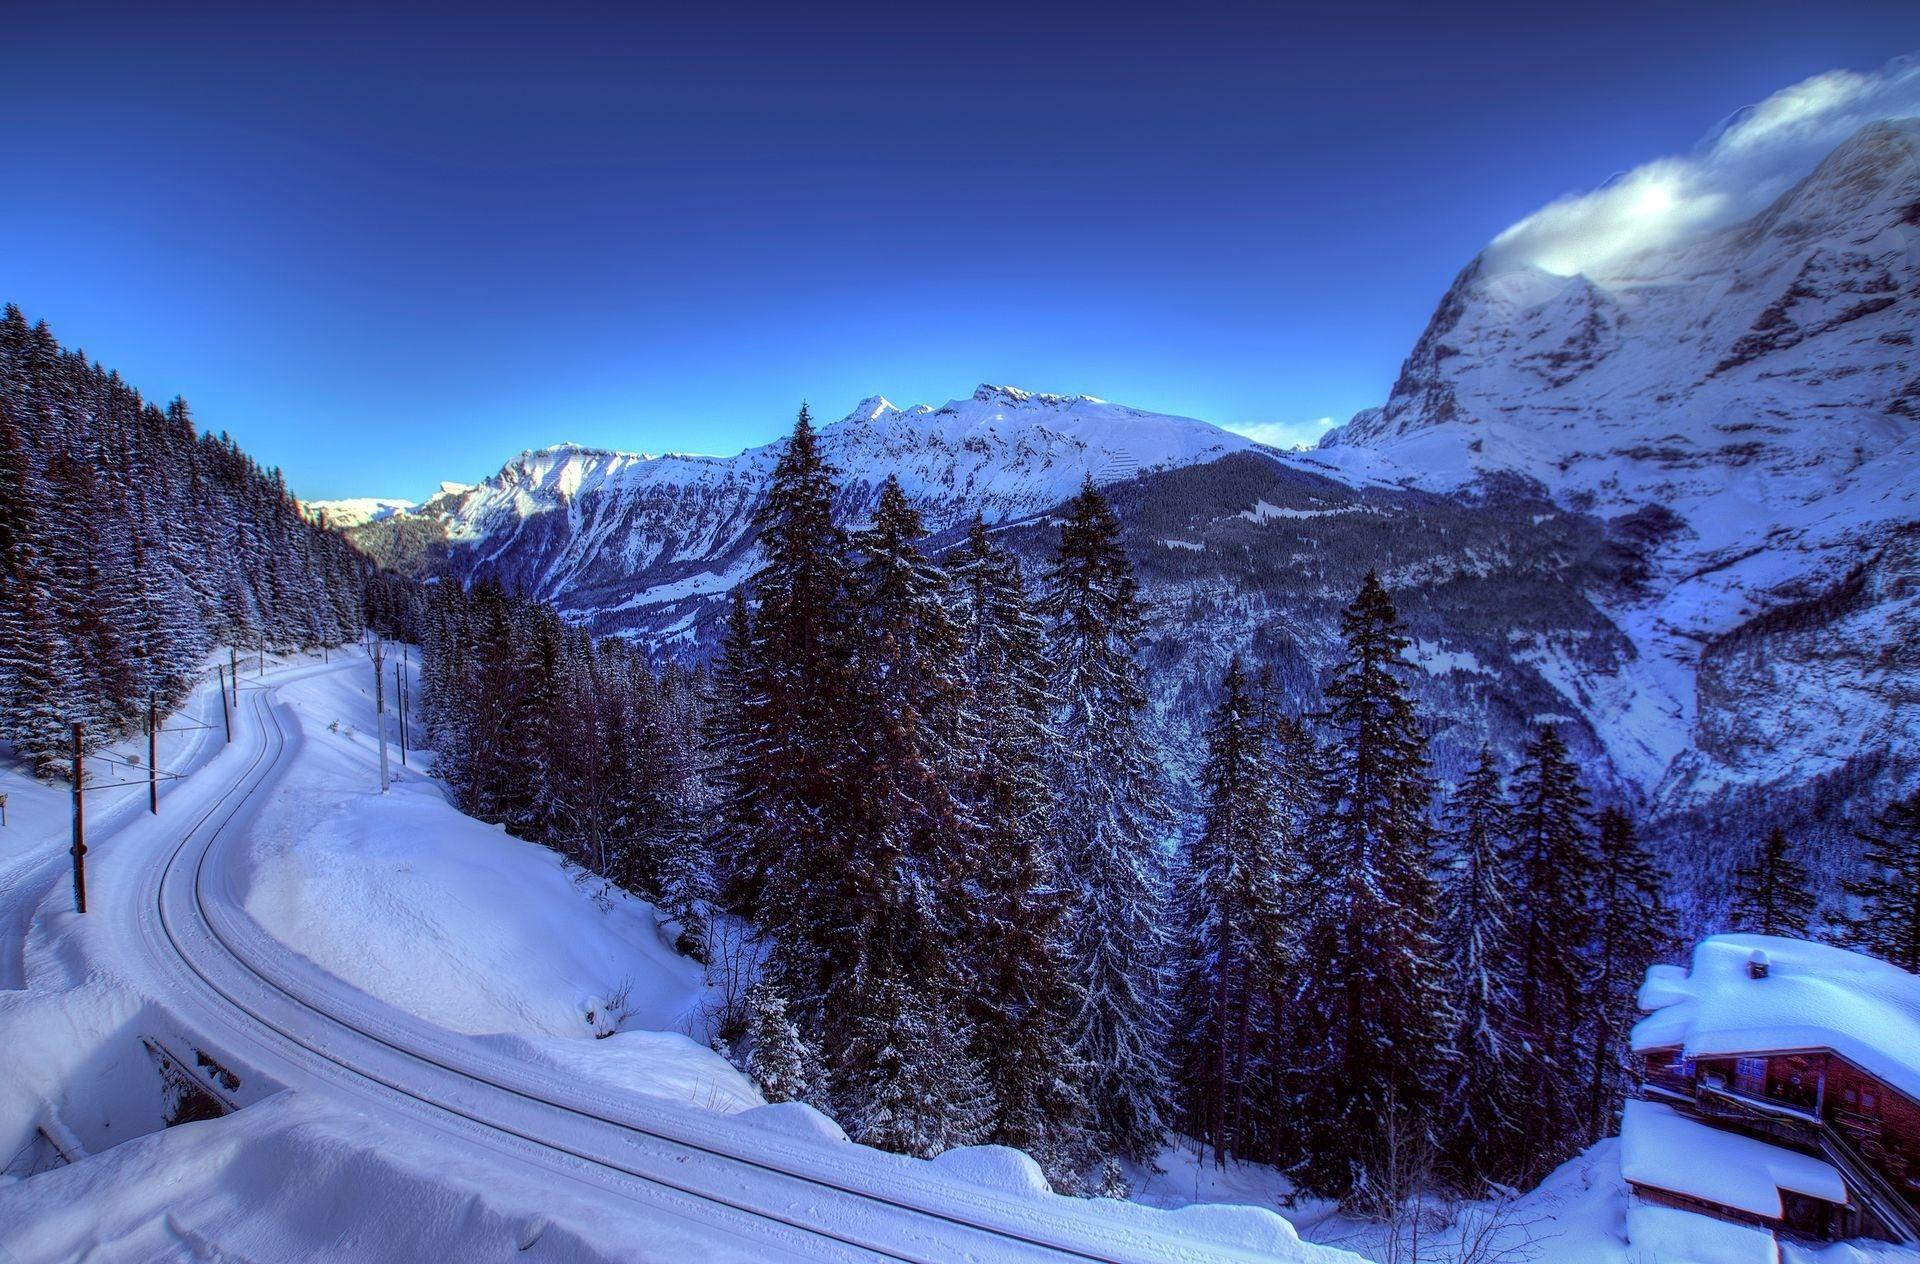 Swiss Alps Wallpaper 38 Hd Desktop Wallpaper - 1941302